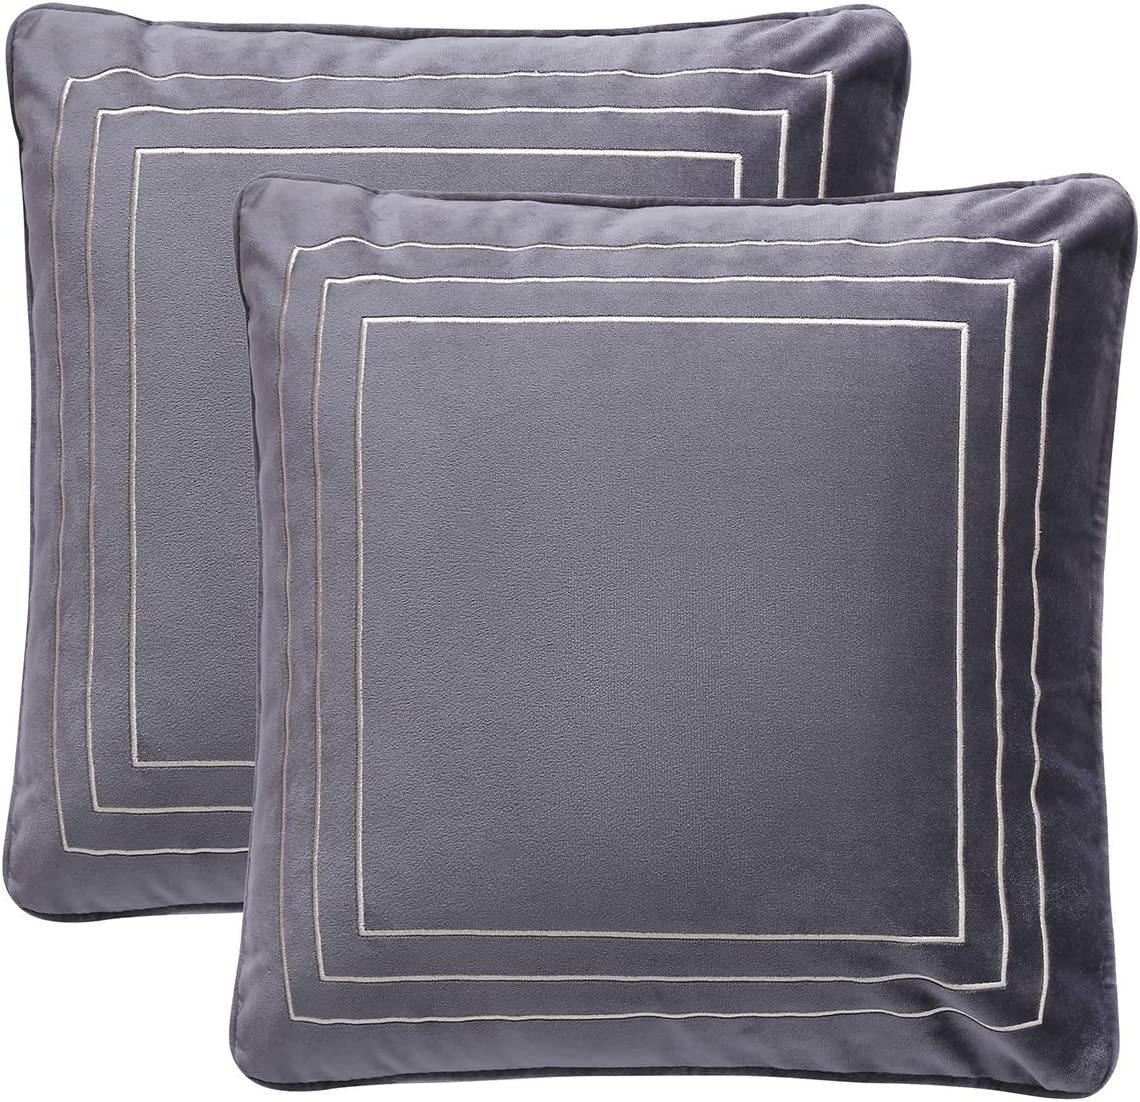 ALSCUEE Pack of 2 Decorative Velvet Covers Pillow 22x22 All stores are sold Throw Rare In